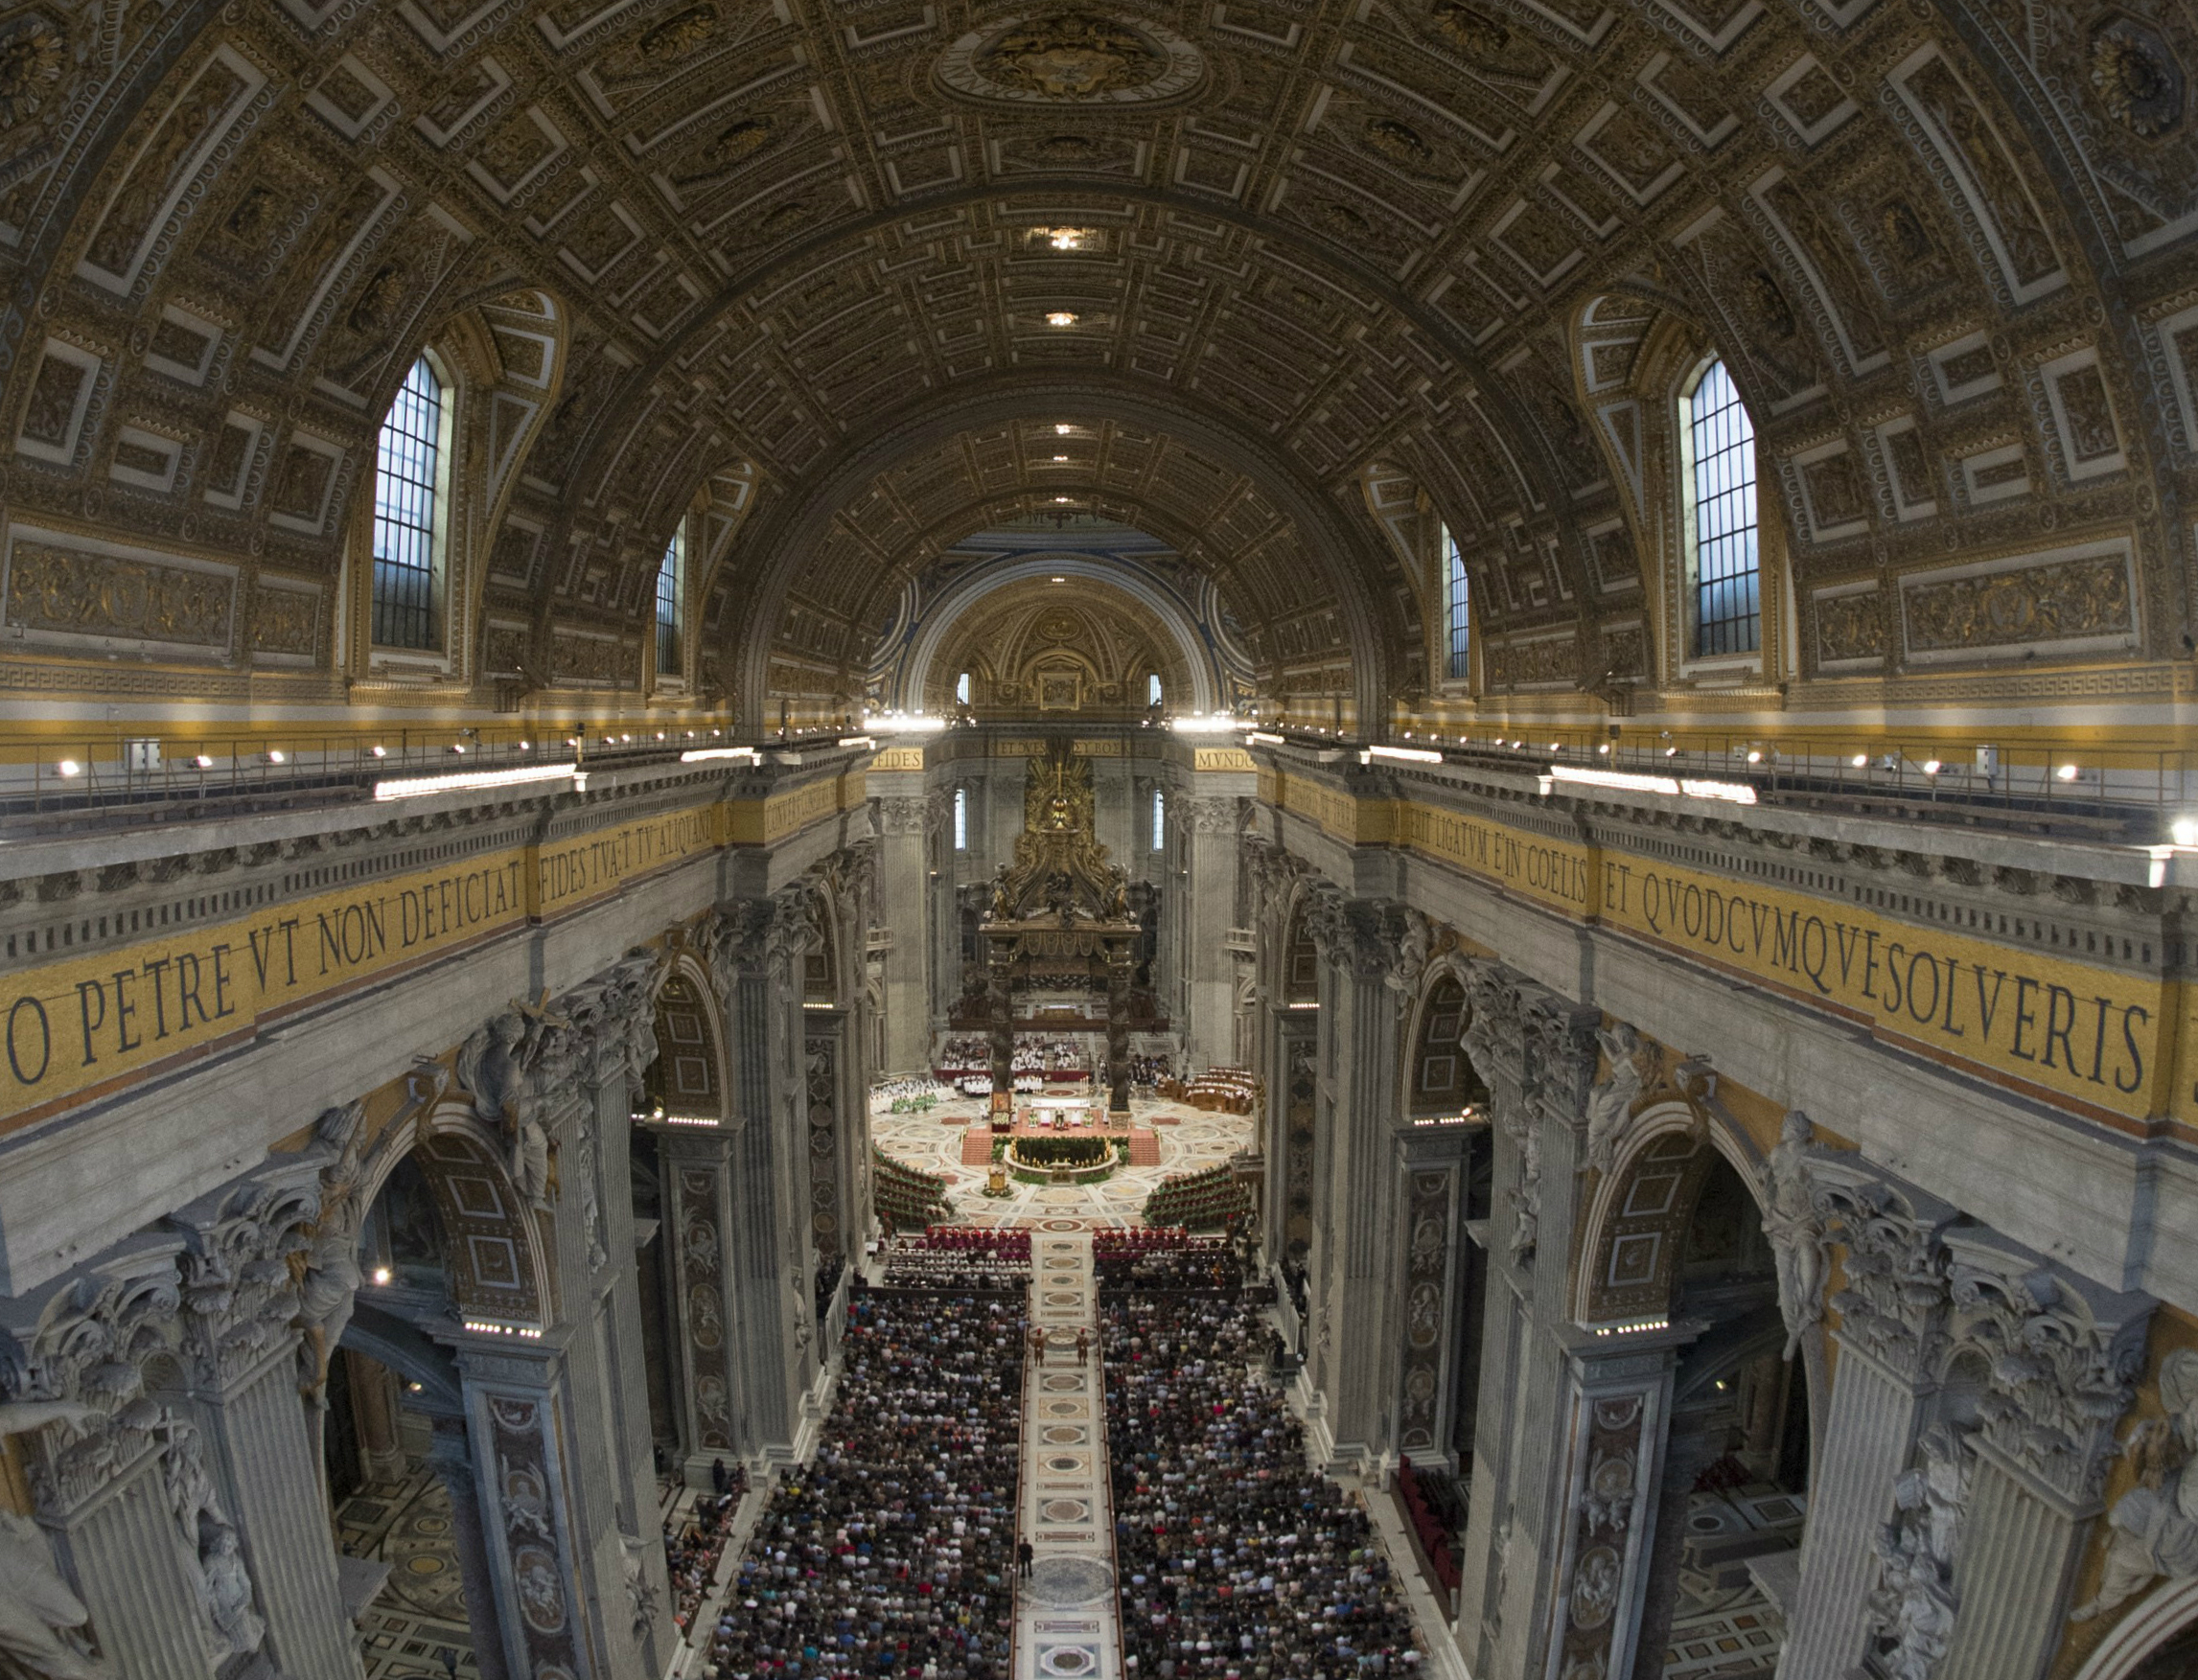 Opening Mass of the XVI Ordinary Meeting of the Synod of Bishops